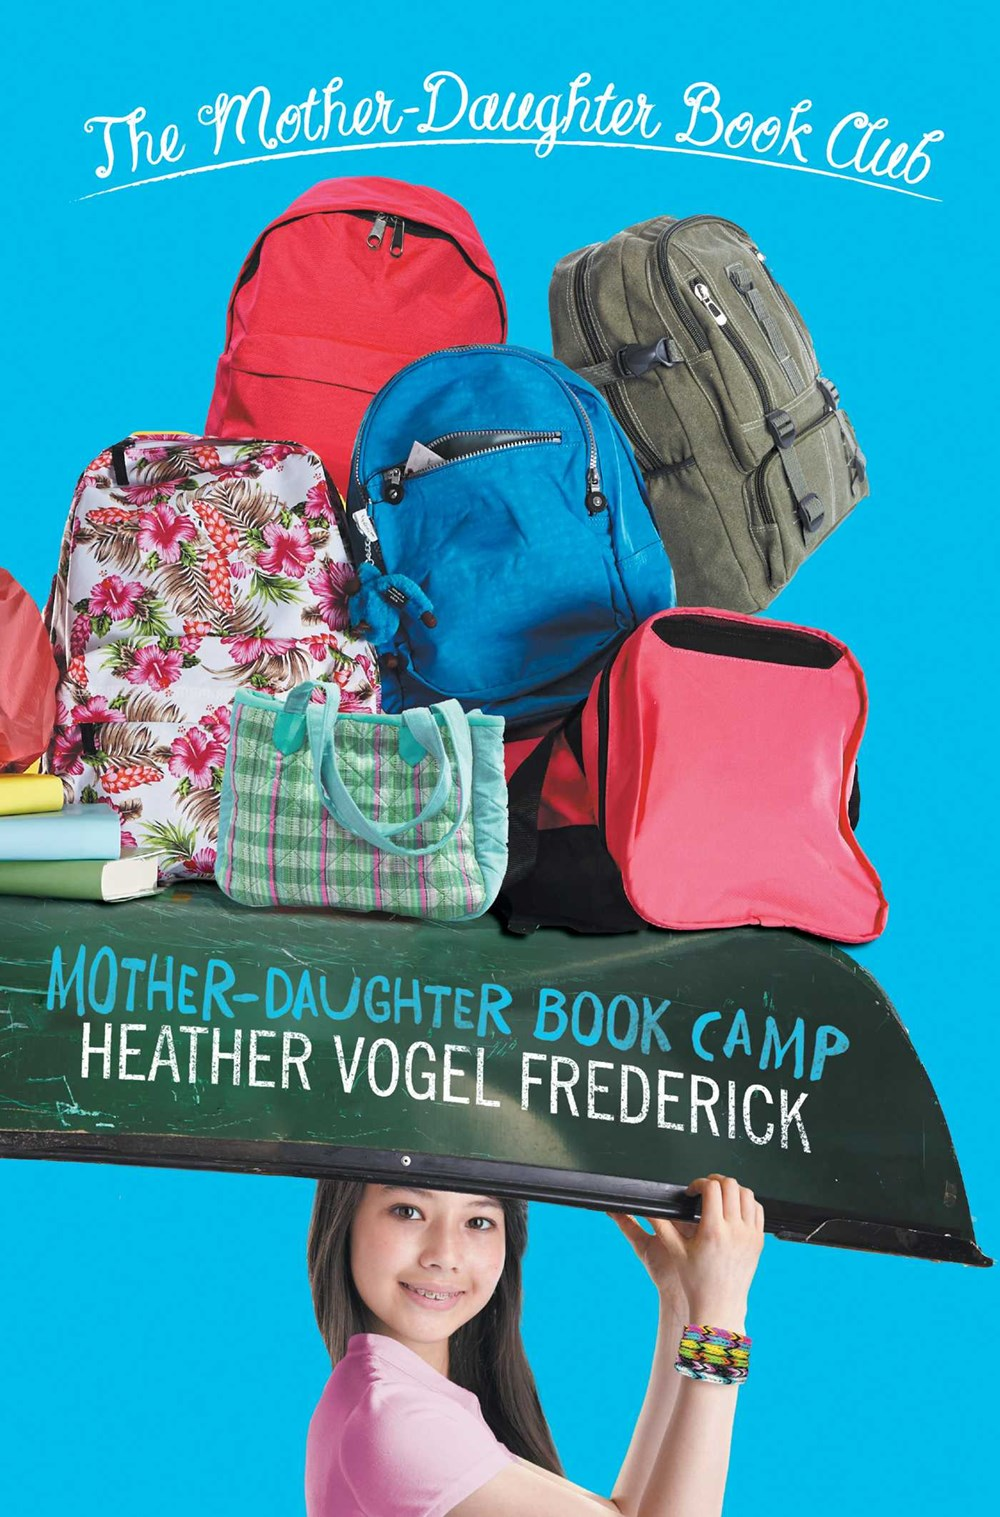 Mother-Daughter Book Camp